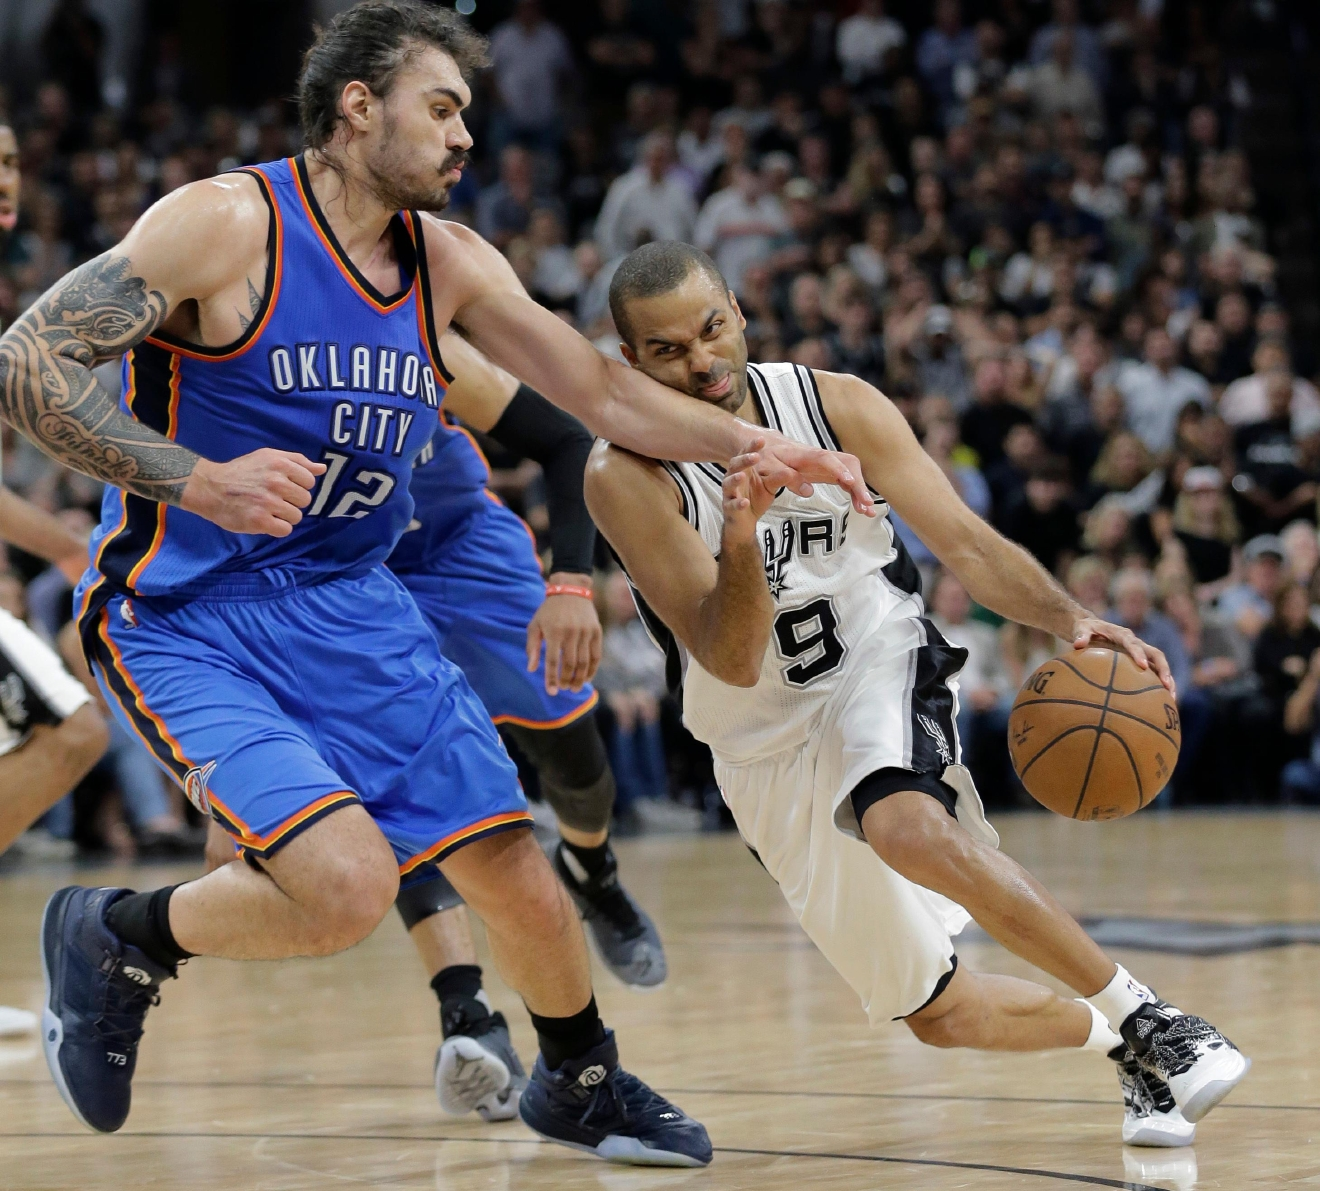 San Antonio Spurs guard Tony Parker (9) is fouled as he drives around Oklahoma City Thunder center Steven Adams (12) during the second half in Game 5 of a second-round NBA basketball playoff series, Tuesday, May 10, 2016, in San Antonio. Oklahoma City won 95-91. (AP Photo/Eric Gay)